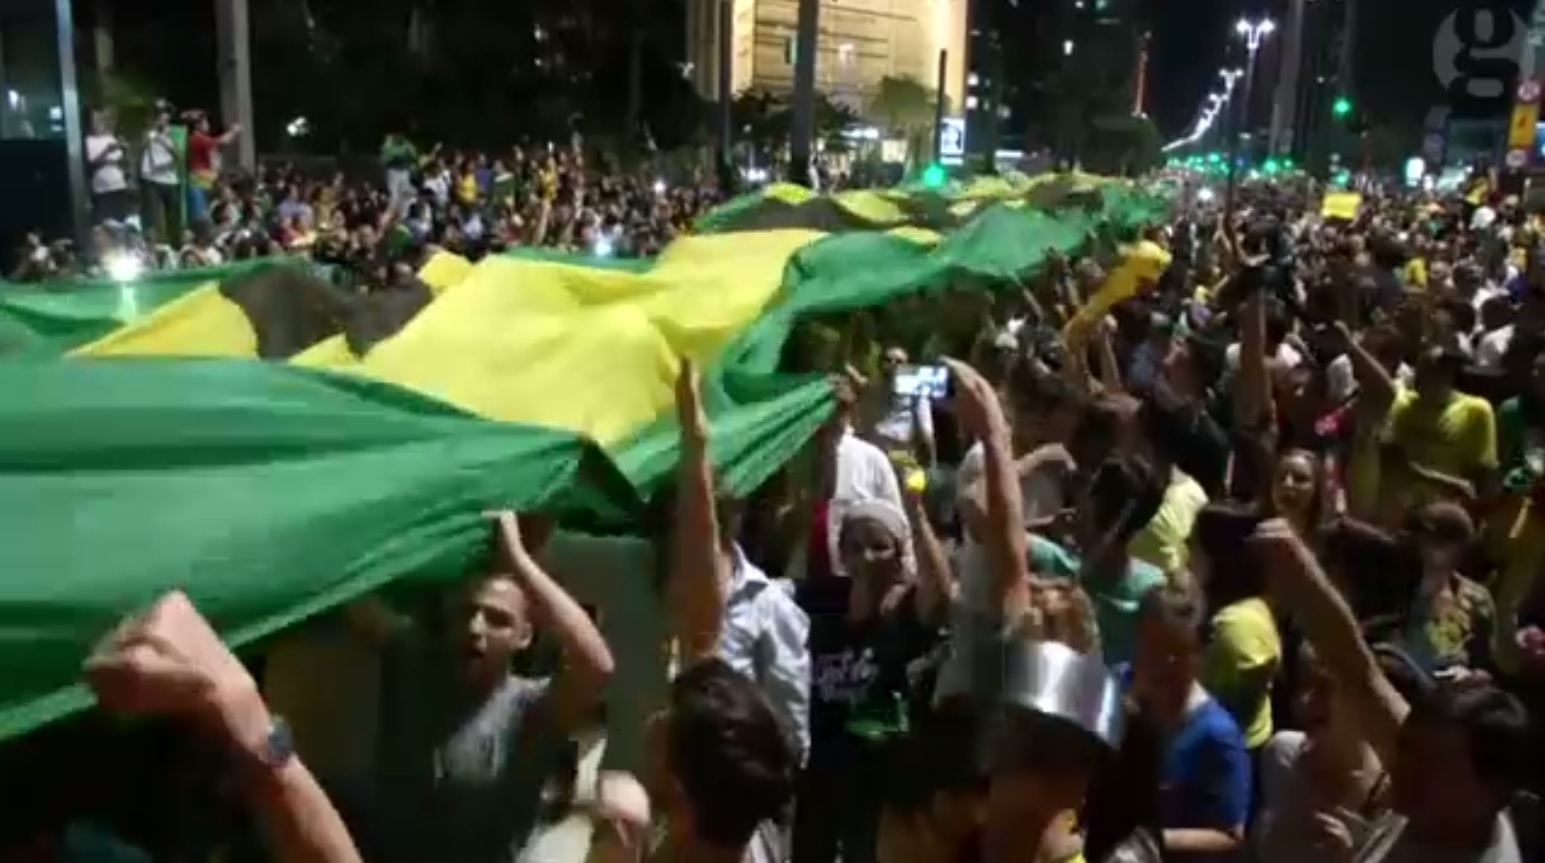 Brazilian citizens urging President Rousseff to resign. Credit: Still from The Guardian video